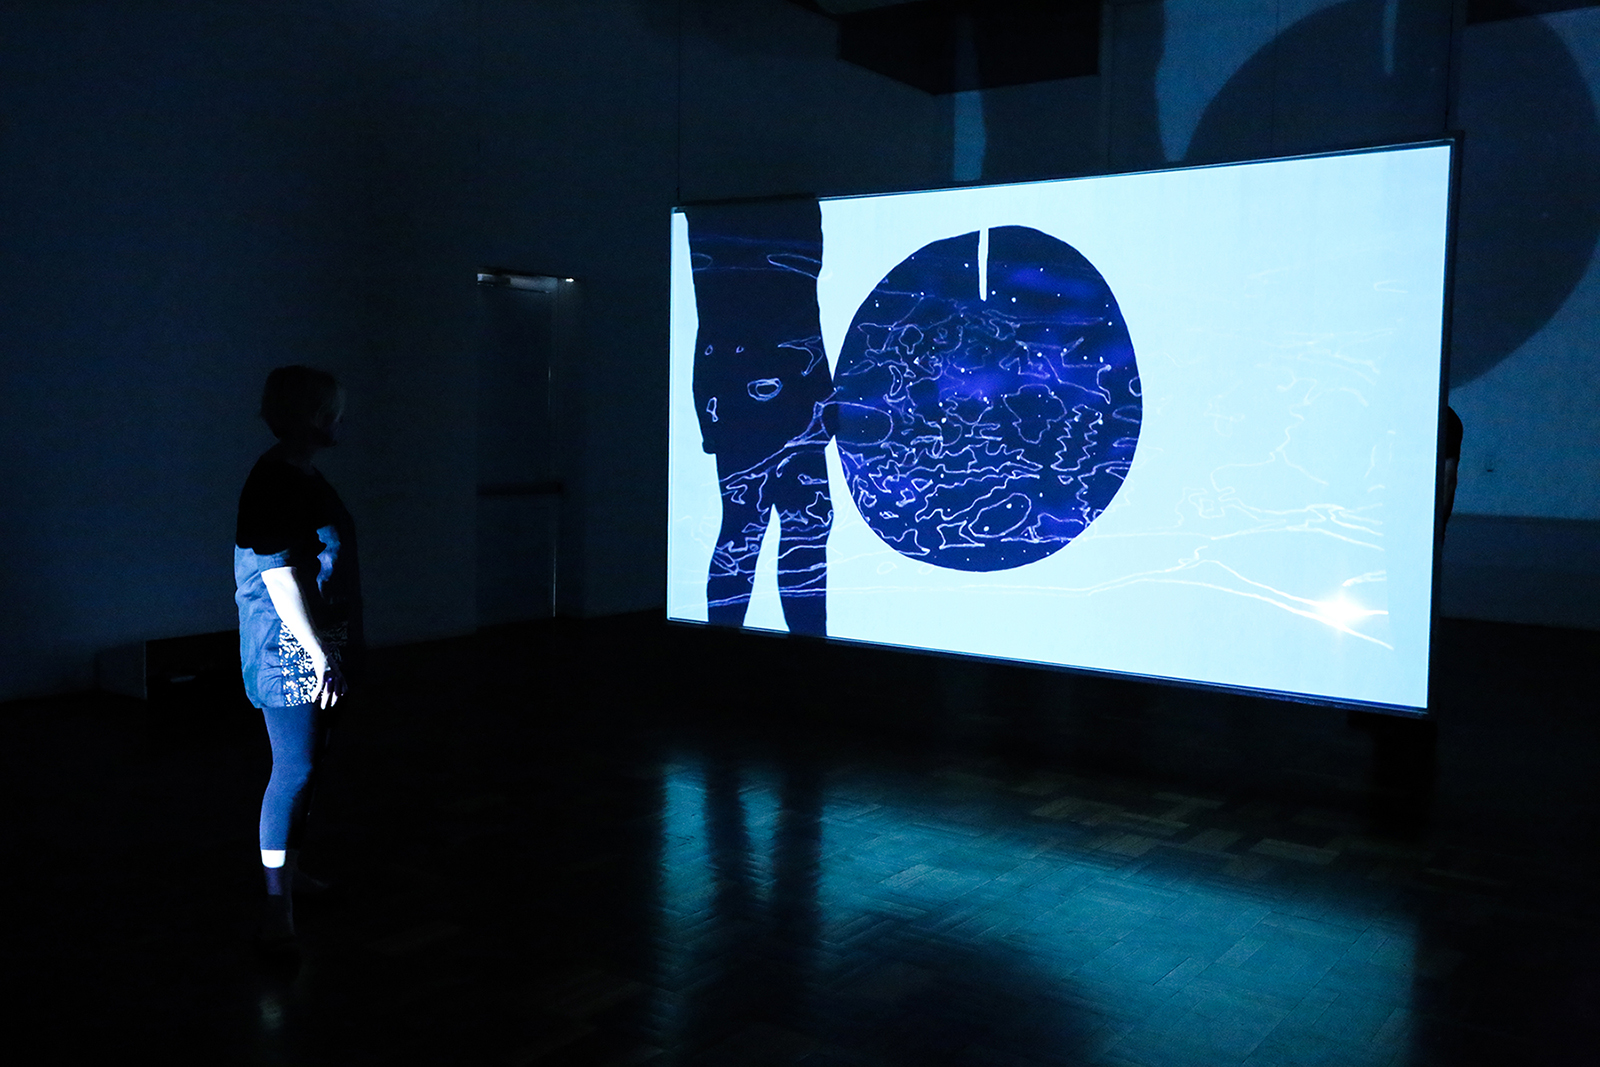 Eclipse, 2017, double-sided projection, dimensions variable. Installation view, ANU School of Art & Design, Canberra.